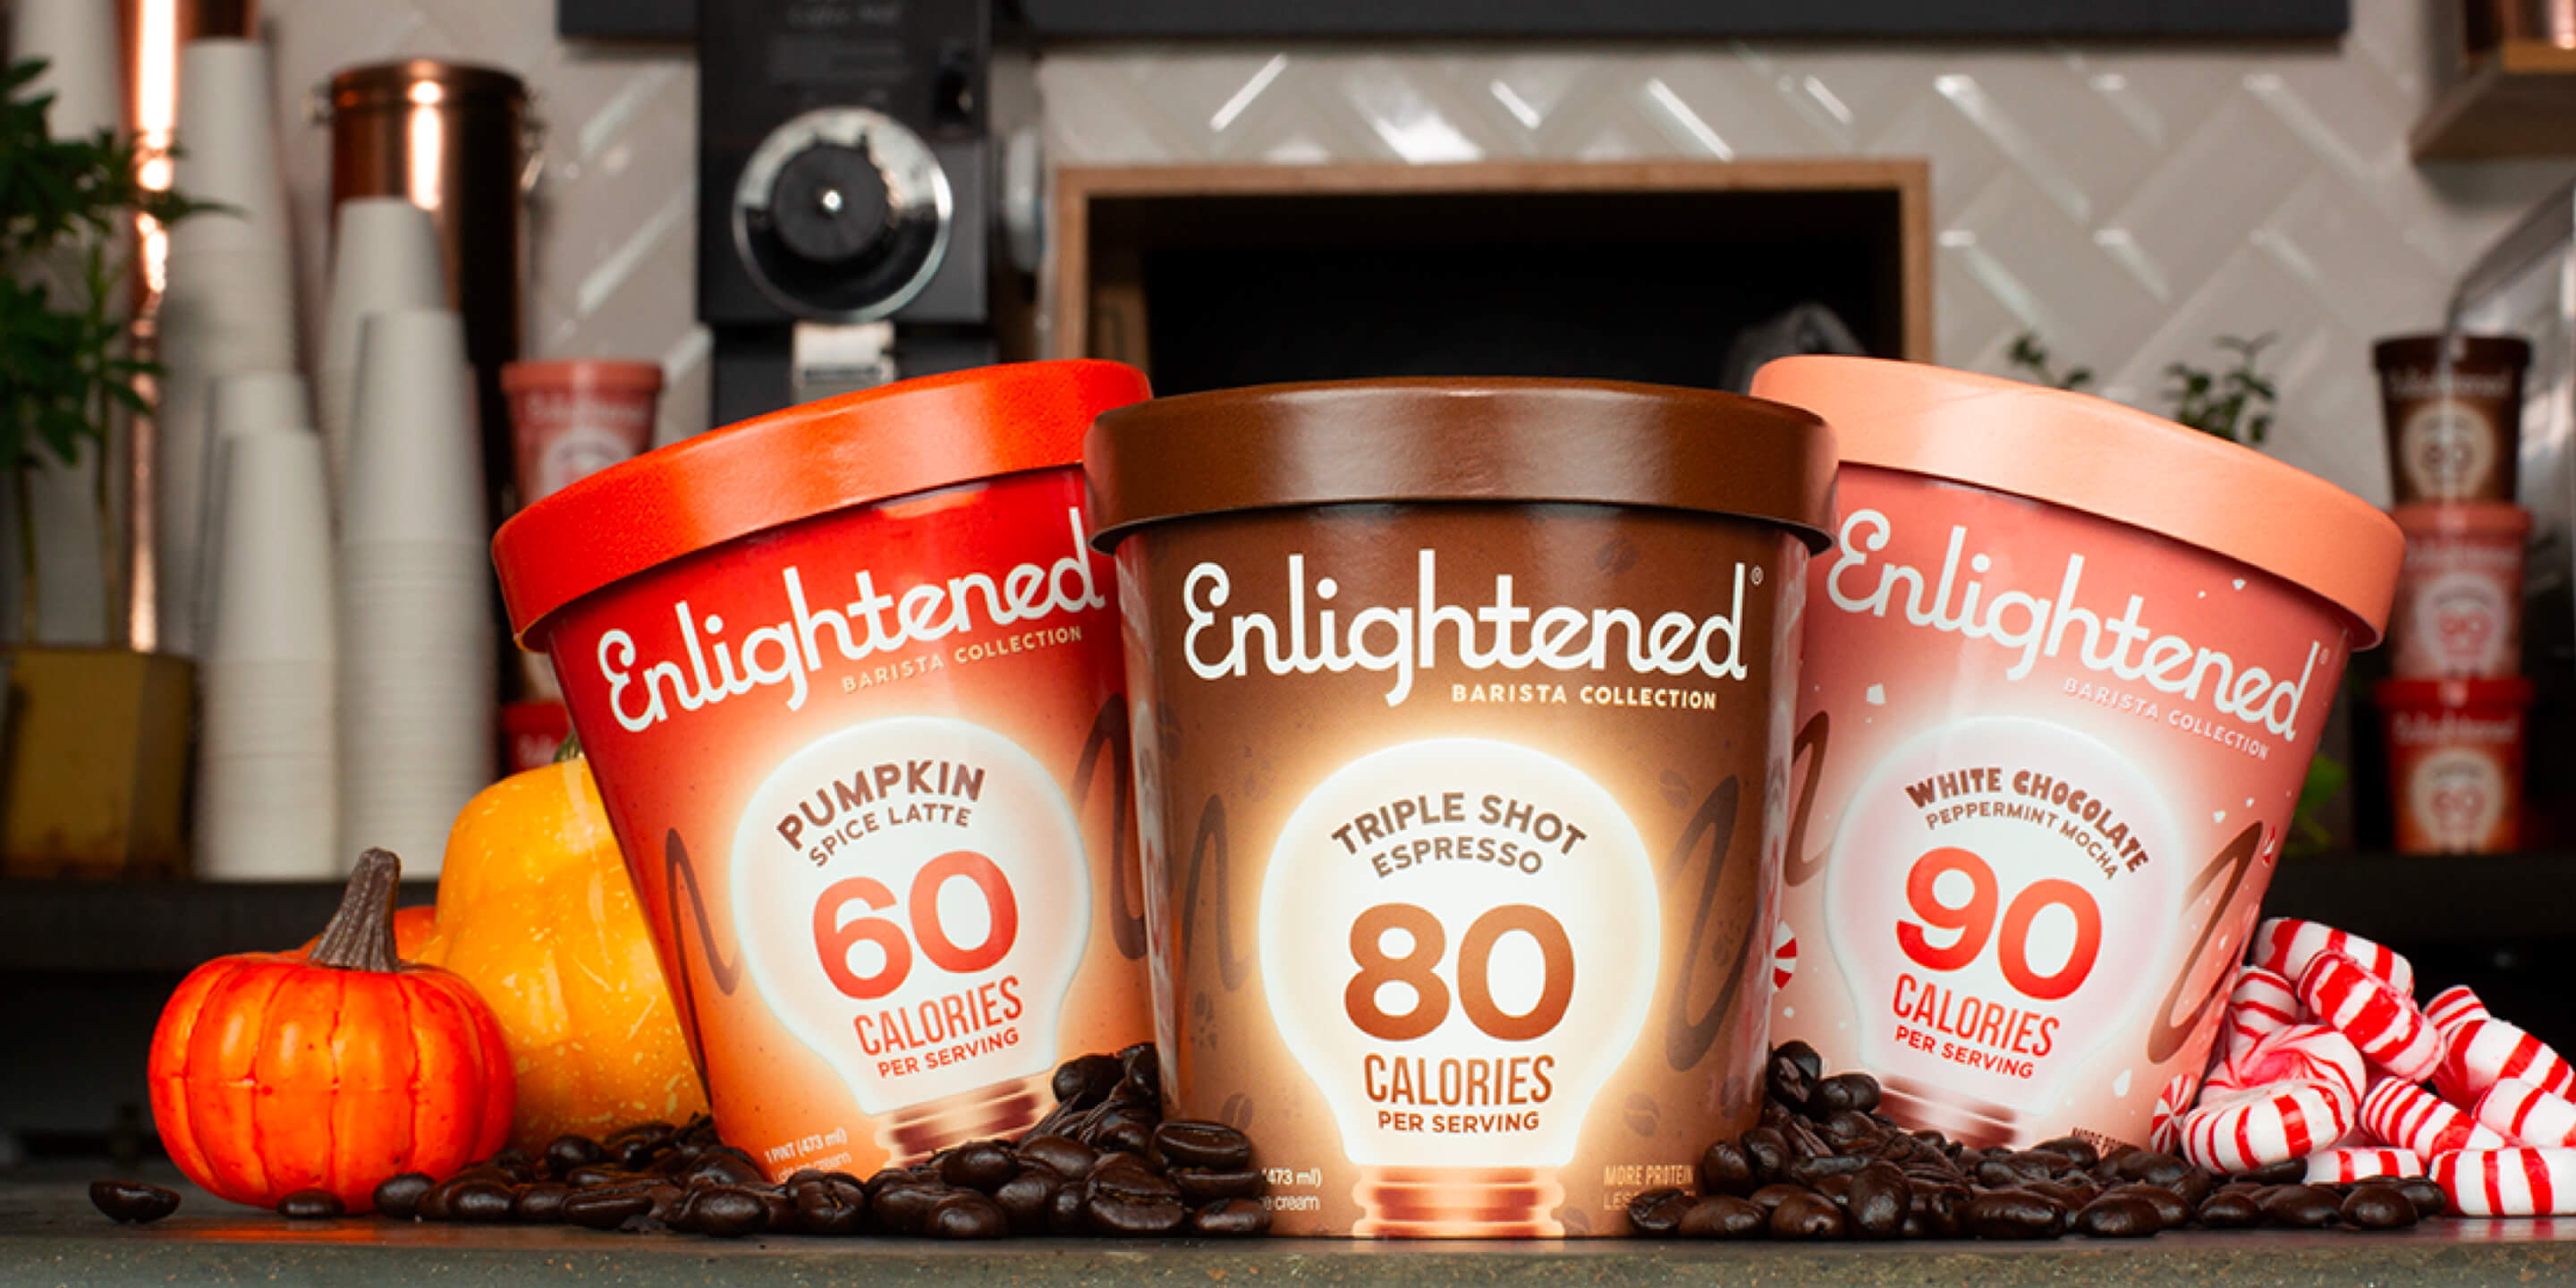 enlightened ice cream pints in coffee shop background